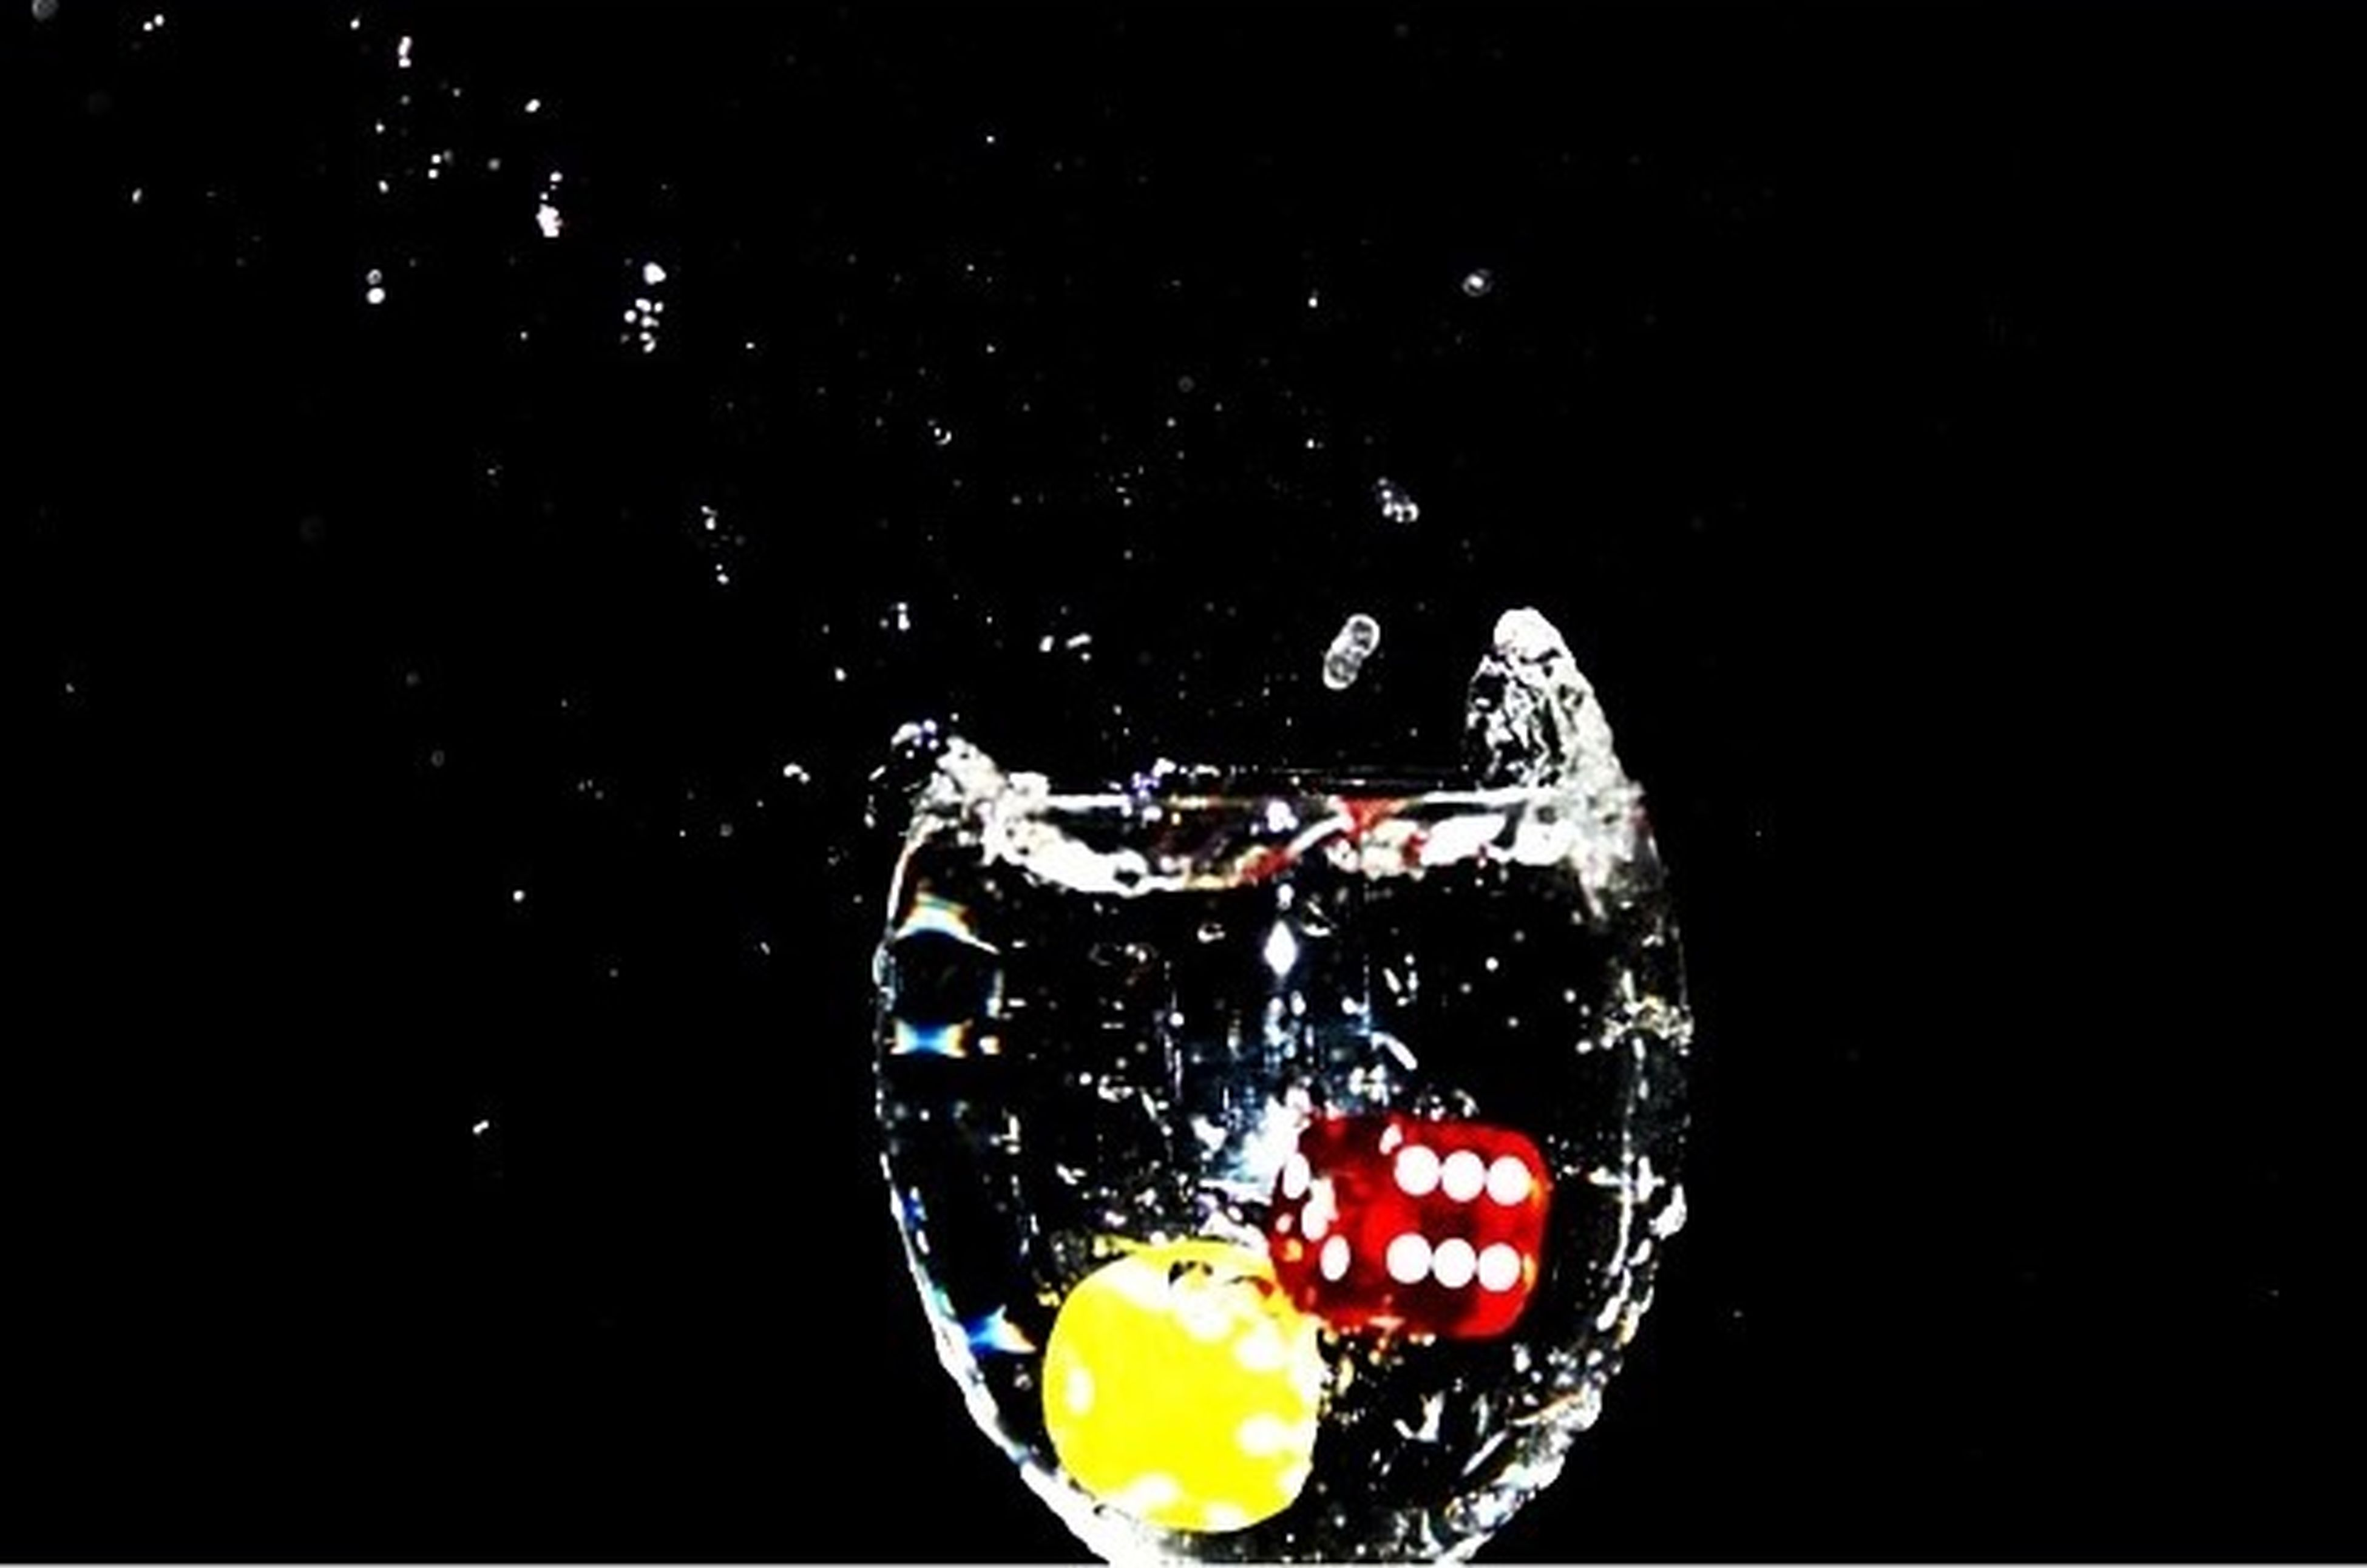 water, transparent, transportation, night, mode of transport, close-up, glass - material, drop, copy space, black background, studio shot, motion, reflection, mid-air, no people, splashing, nautical vessel, nature, outdoors, air vehicle